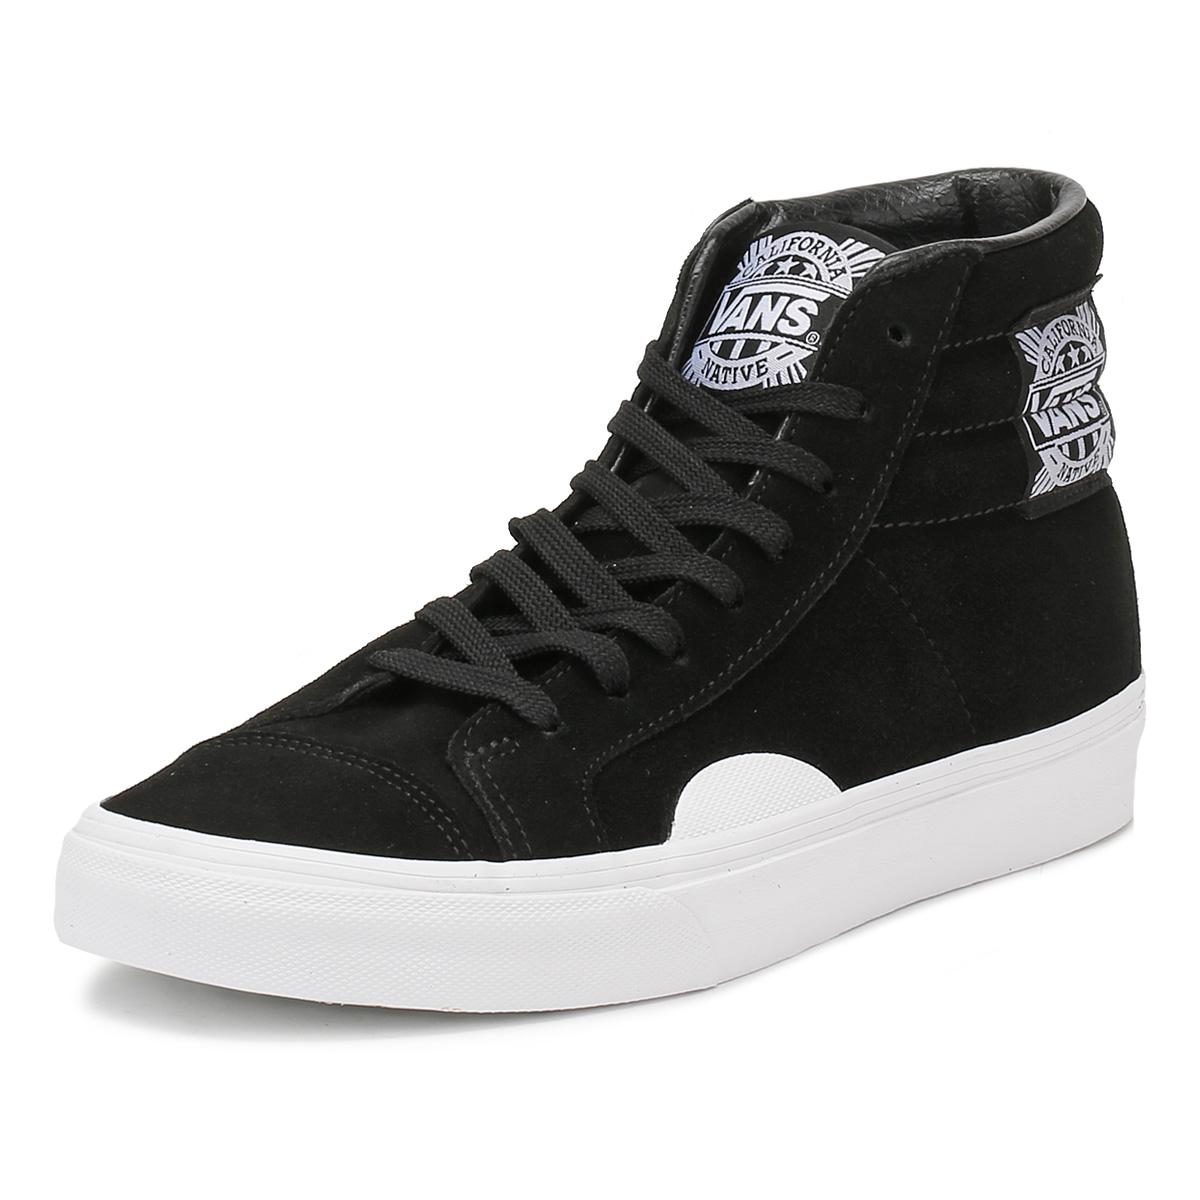 af28517aad65 Lyst - Vans Mens Black   White Native Suede Style 238 Trainers in ...